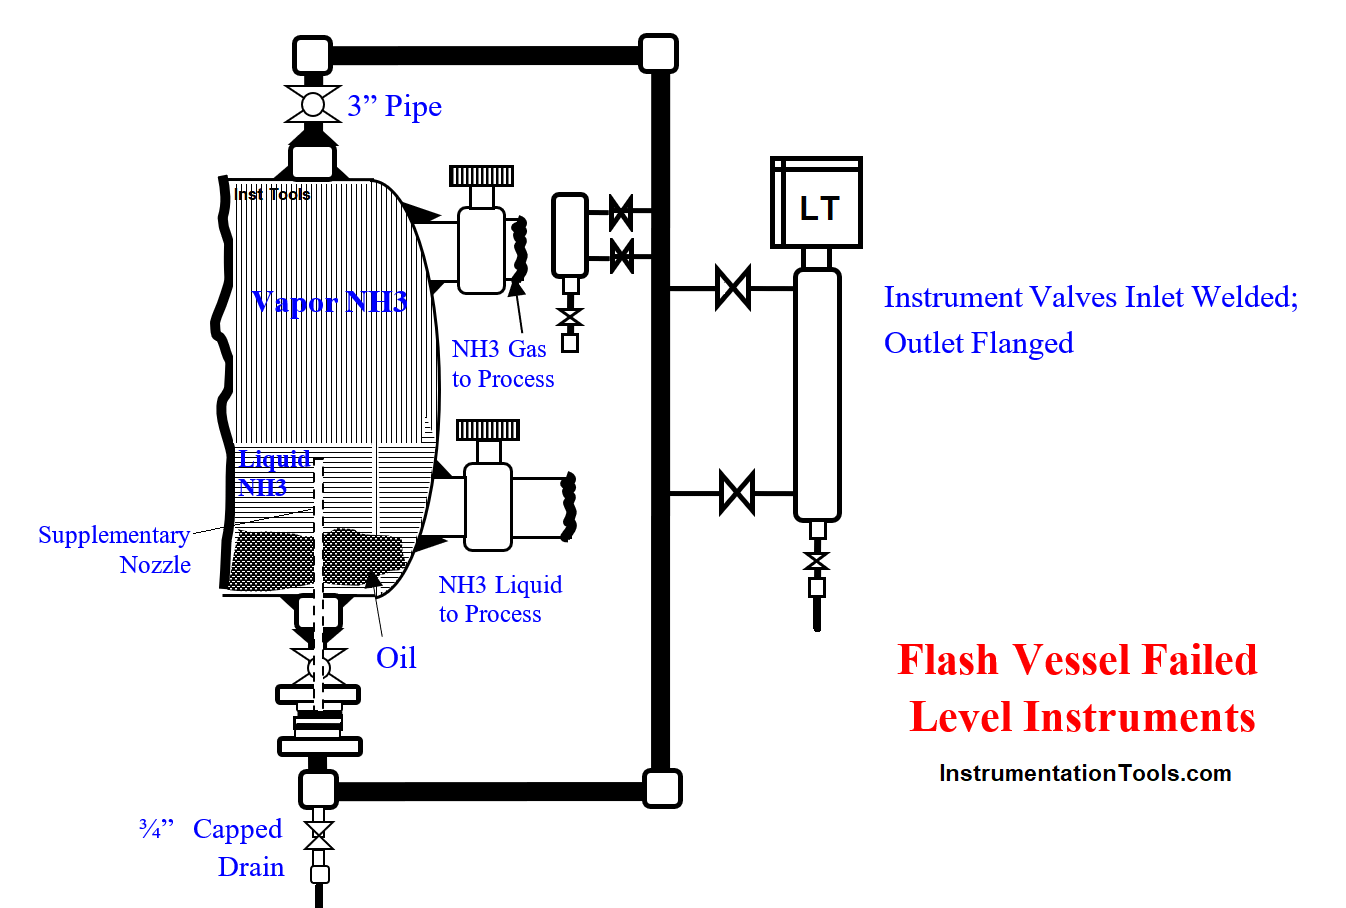 Flash Vessel All Level Instruments Stopped Working